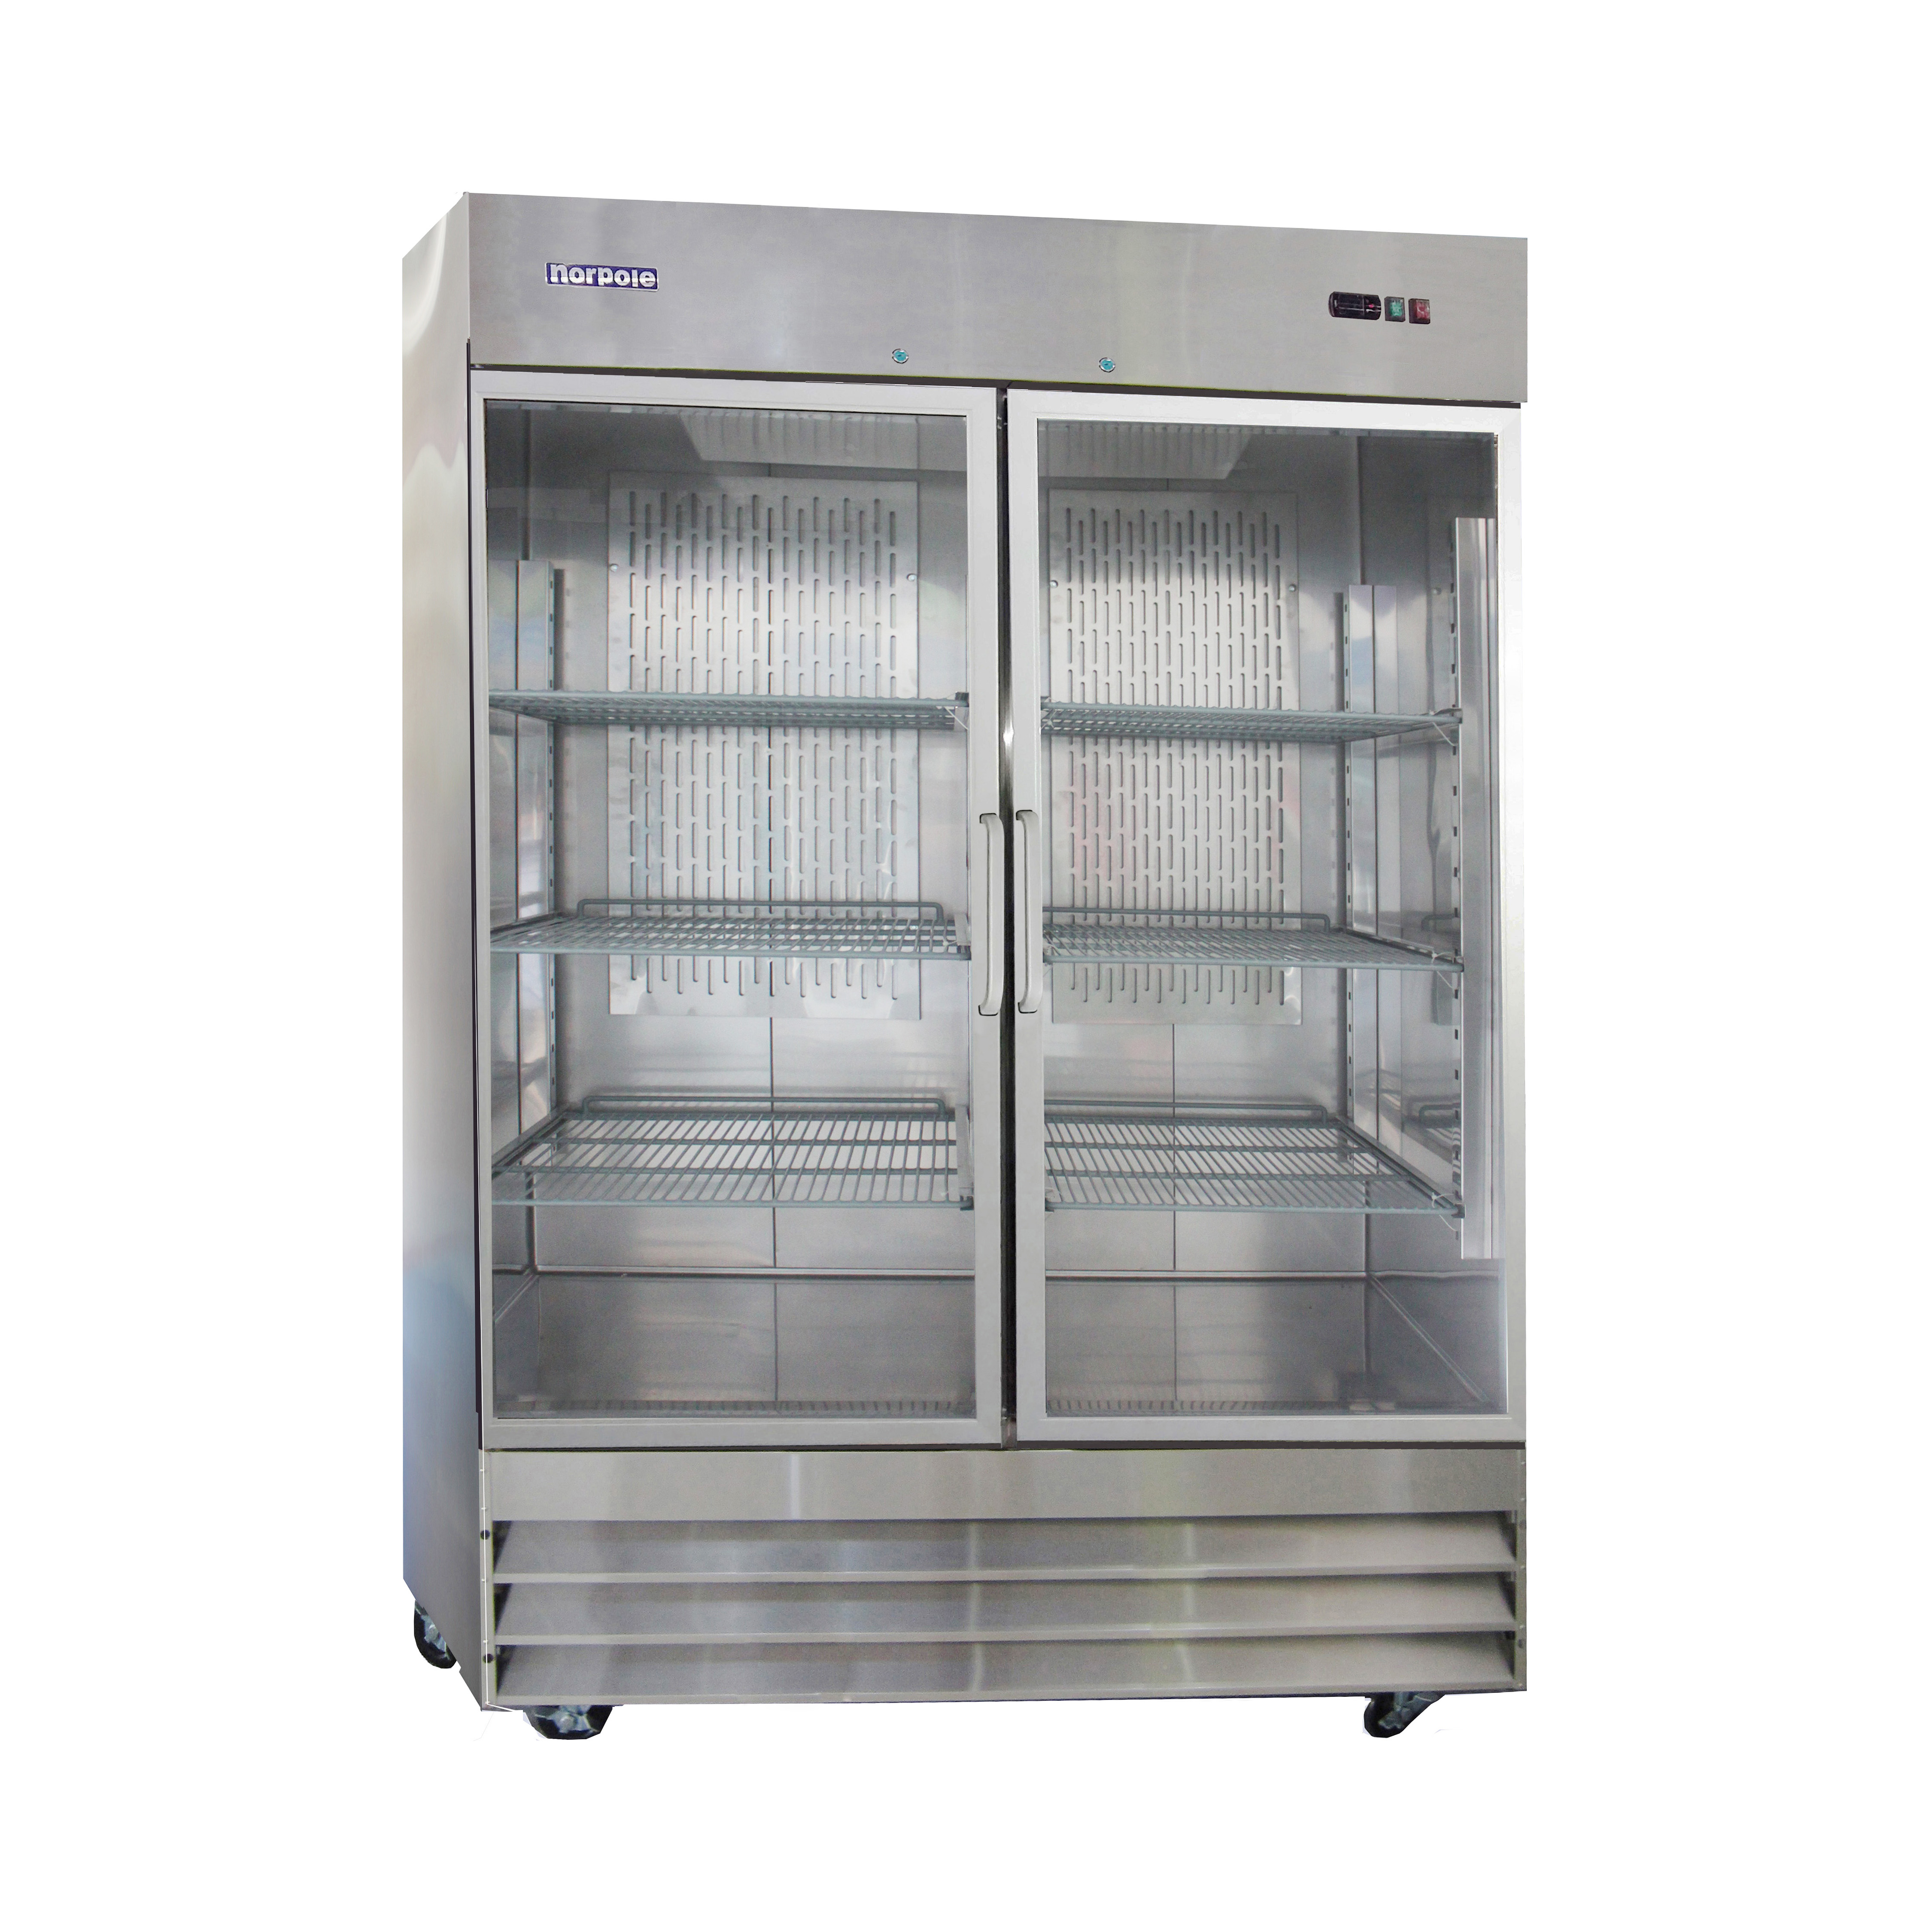 Norpole Np2r G 2 Glass Door Up Right Reach In Refrigerator Quality